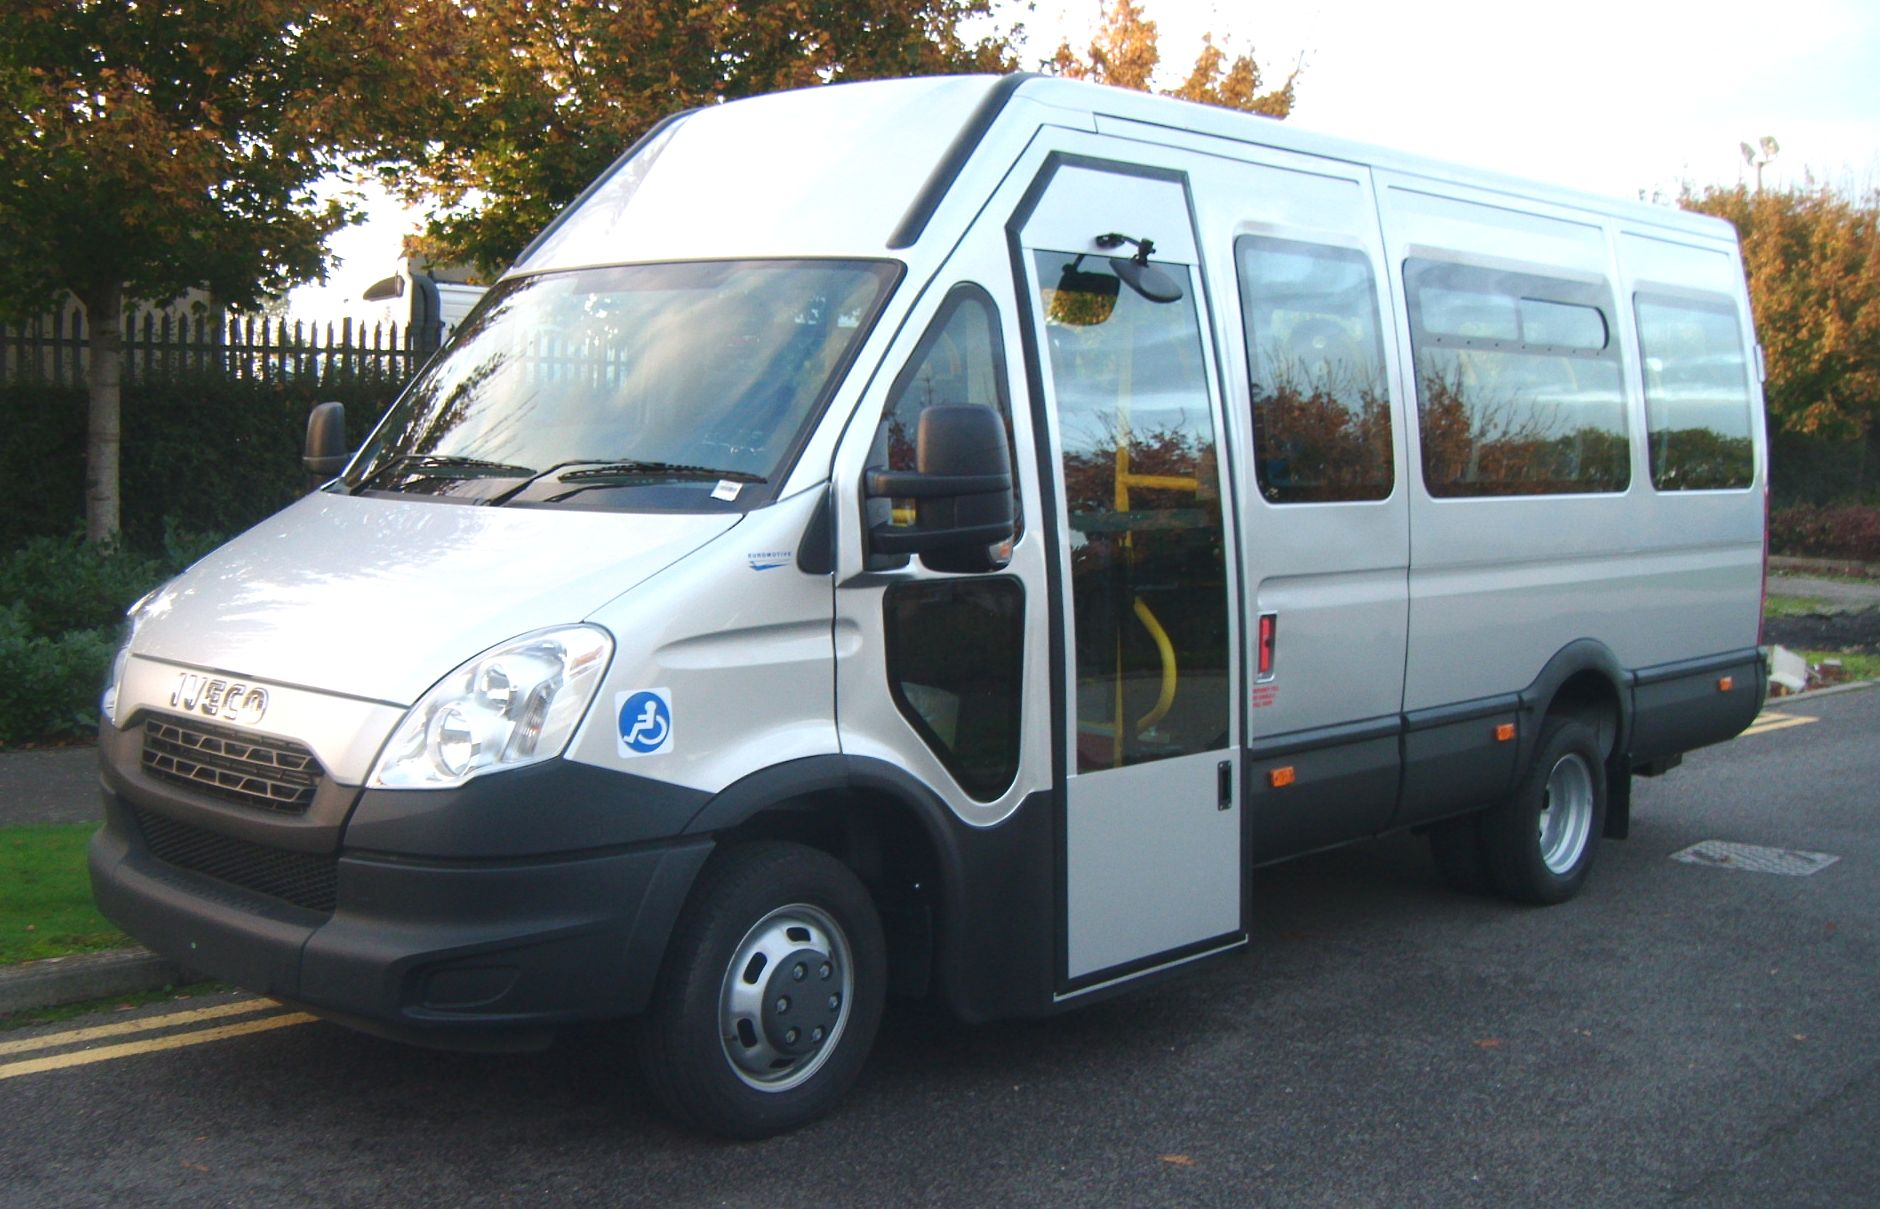 Iveco Daily Accessible Minibus Conversion For Sale Hythe Kent